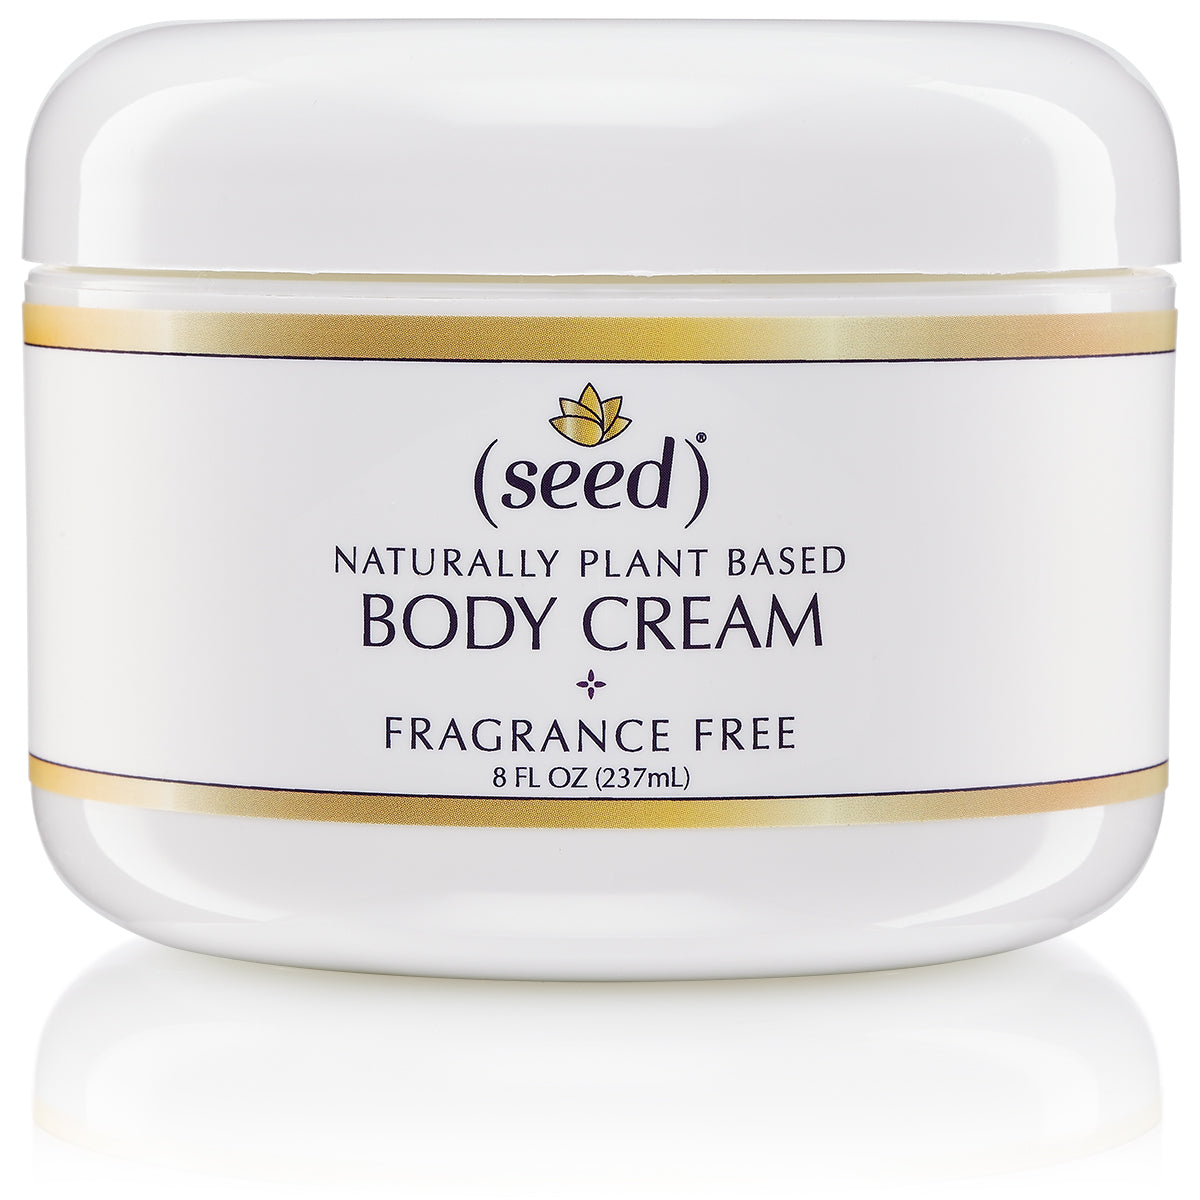 Seed Fragrance Free Silky and Rich Body Cream with grape seed oil, shea butter and green tea extract